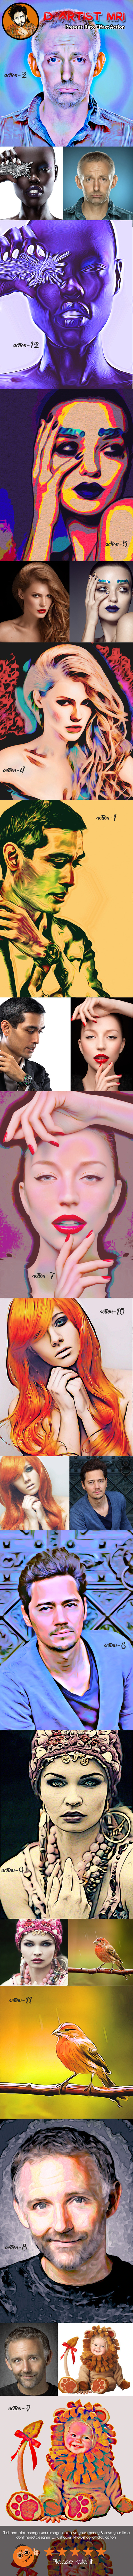 GraphicRiver 12 Creative Oil Art Action 8898053